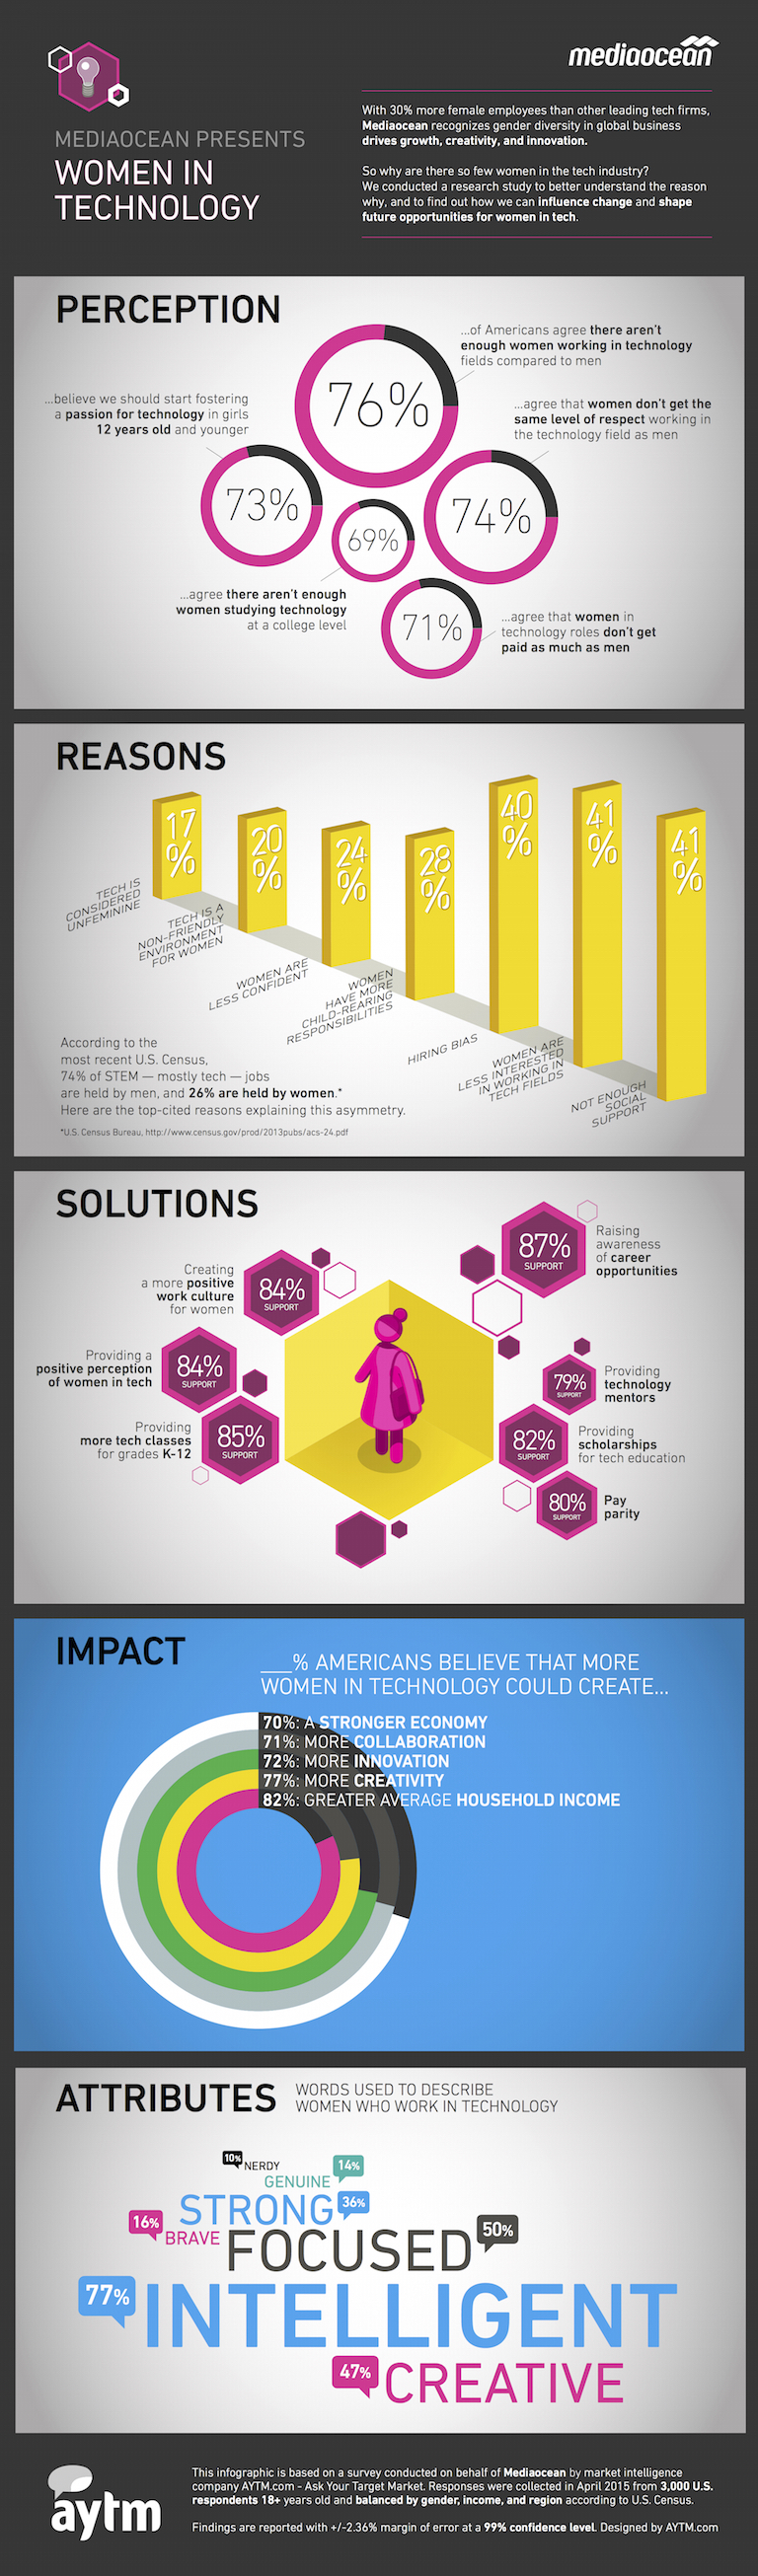 Mediaocean Women in Tech Infographic